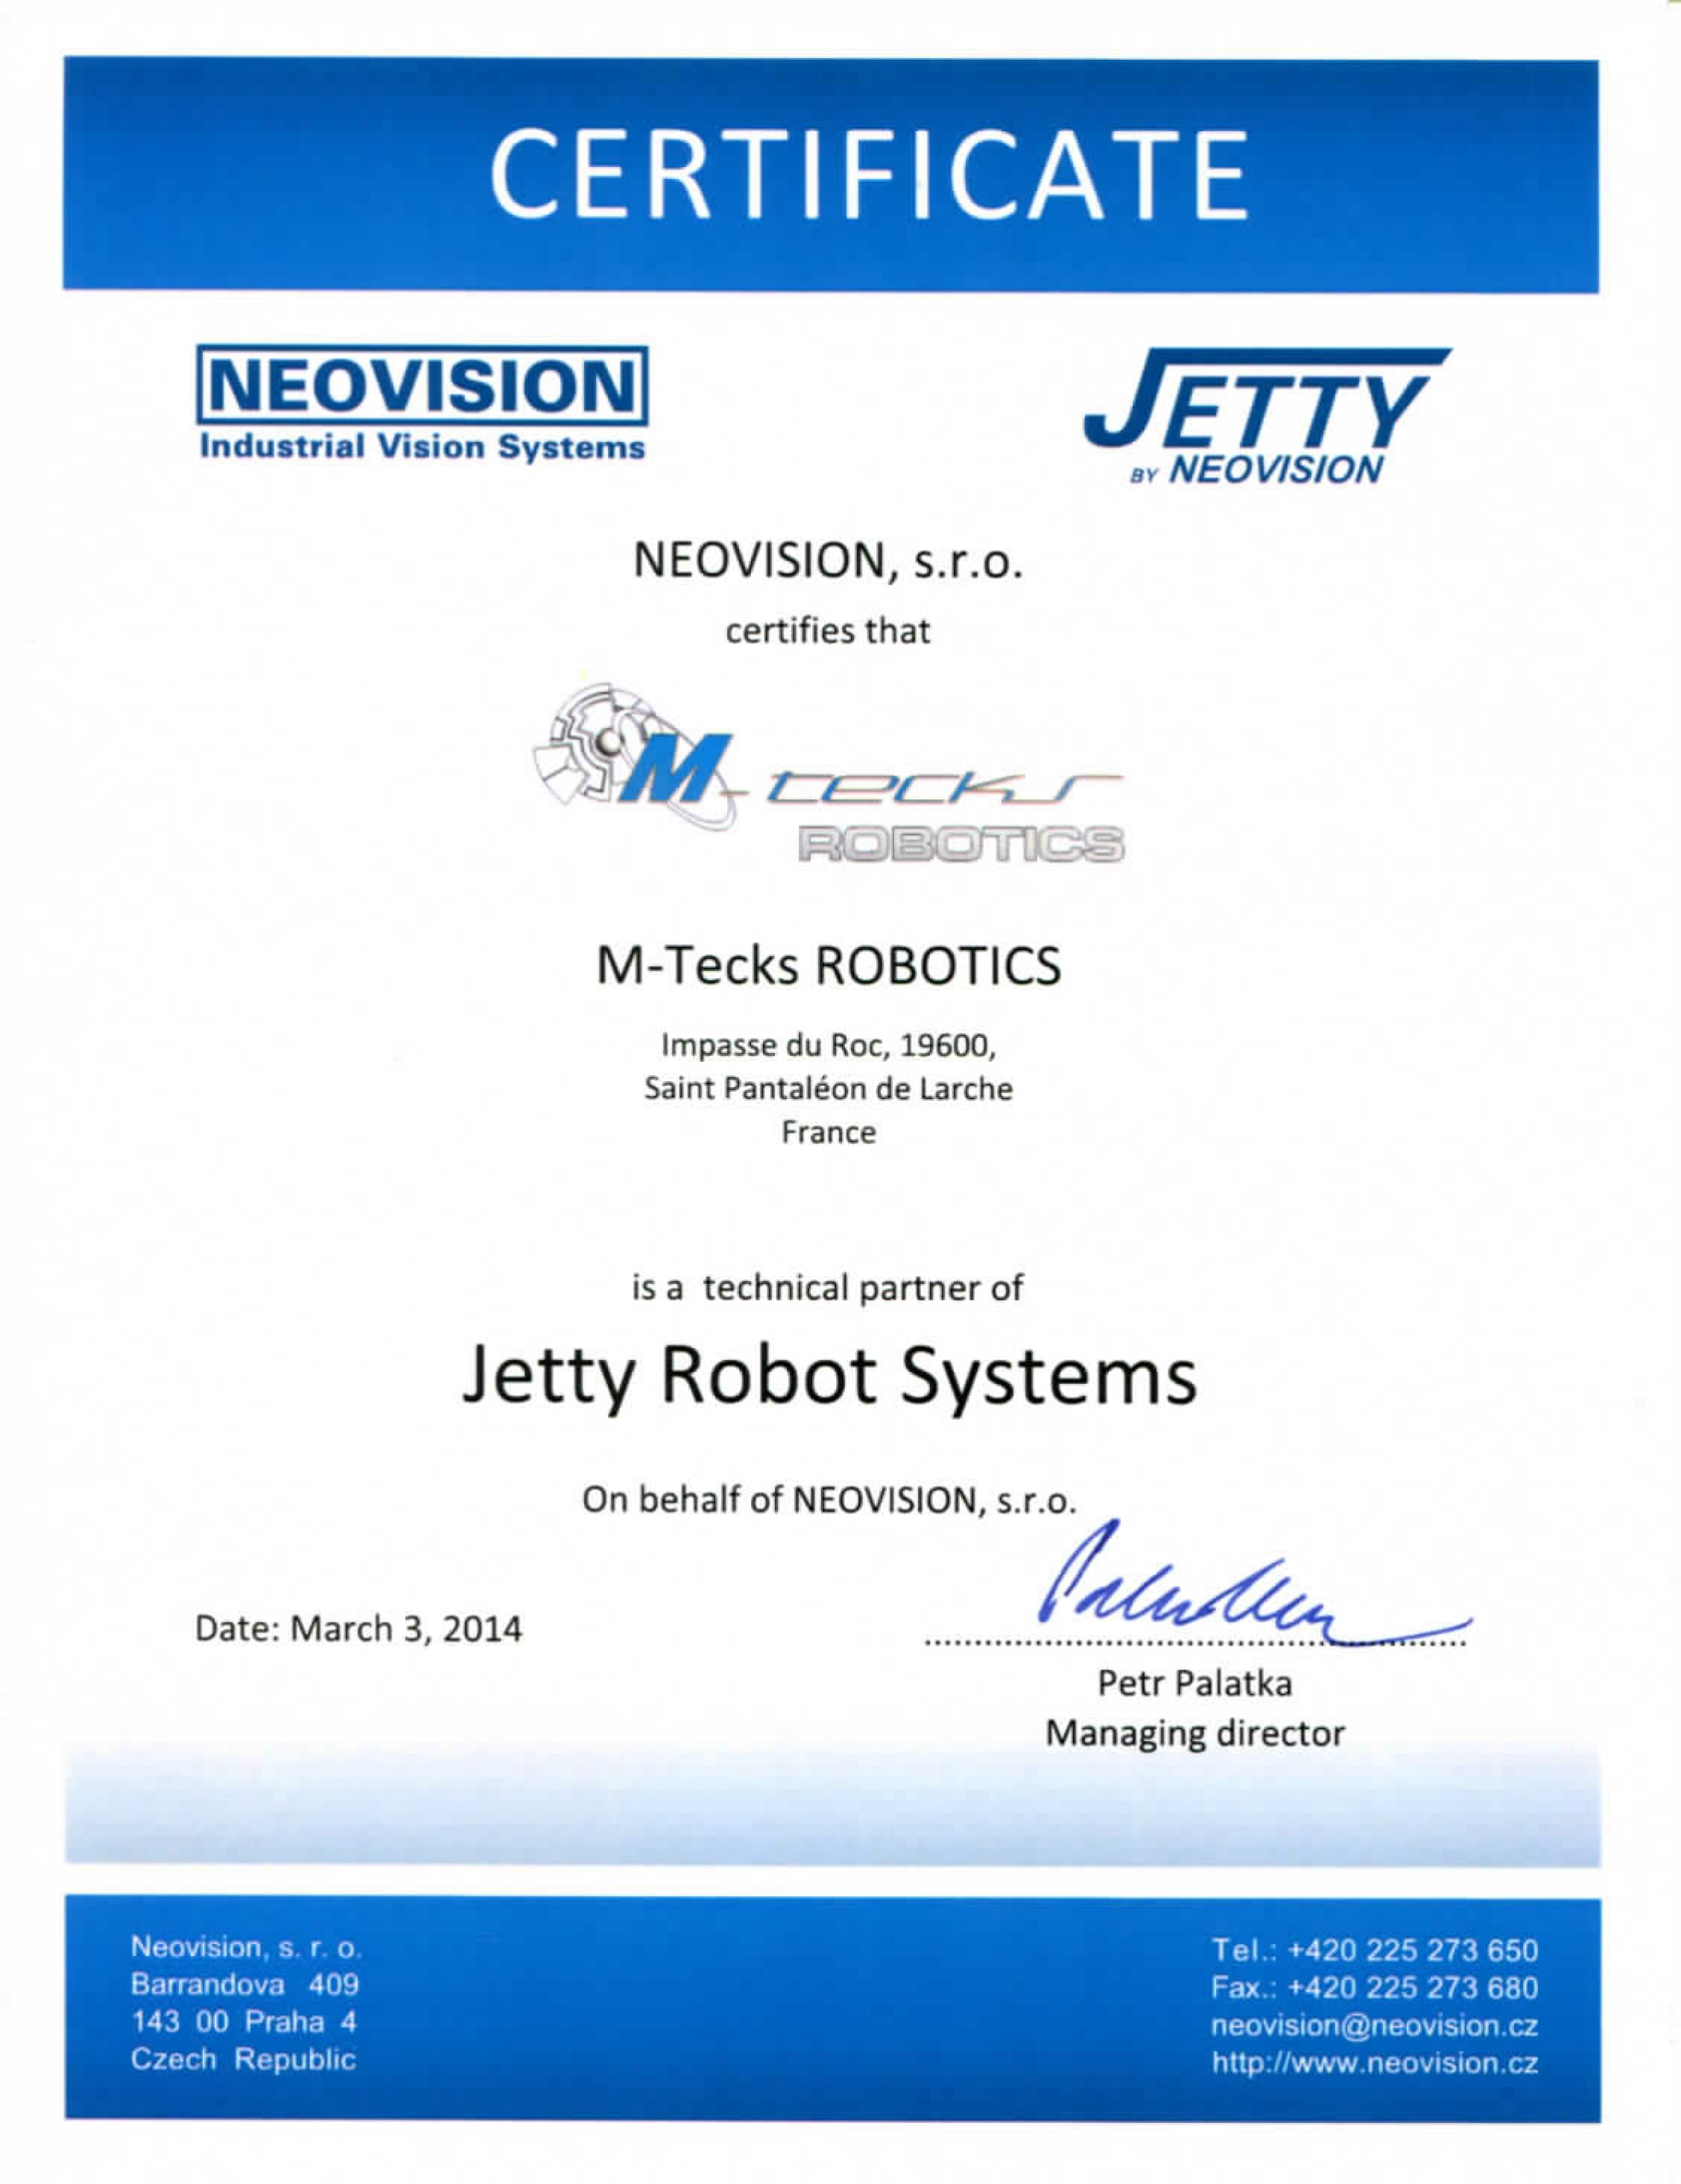 Certificat technique JETTY-M-TecksROBOTICS 2014